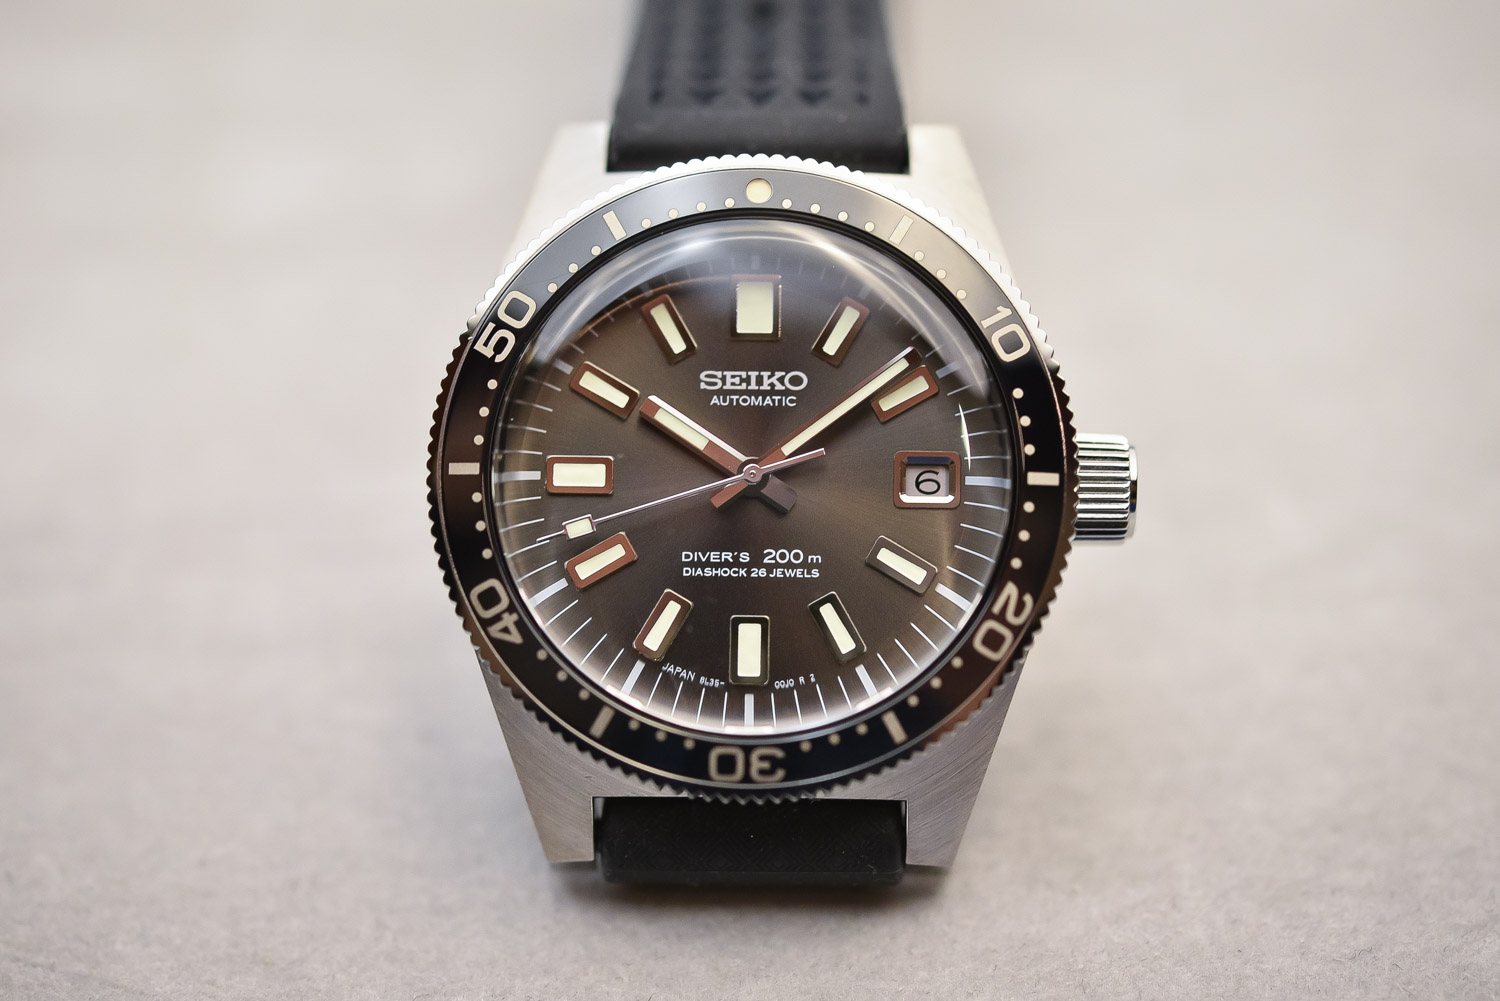 Seiko 62Mas Re-edition SLA017 - Top 10 Baselworld 2017